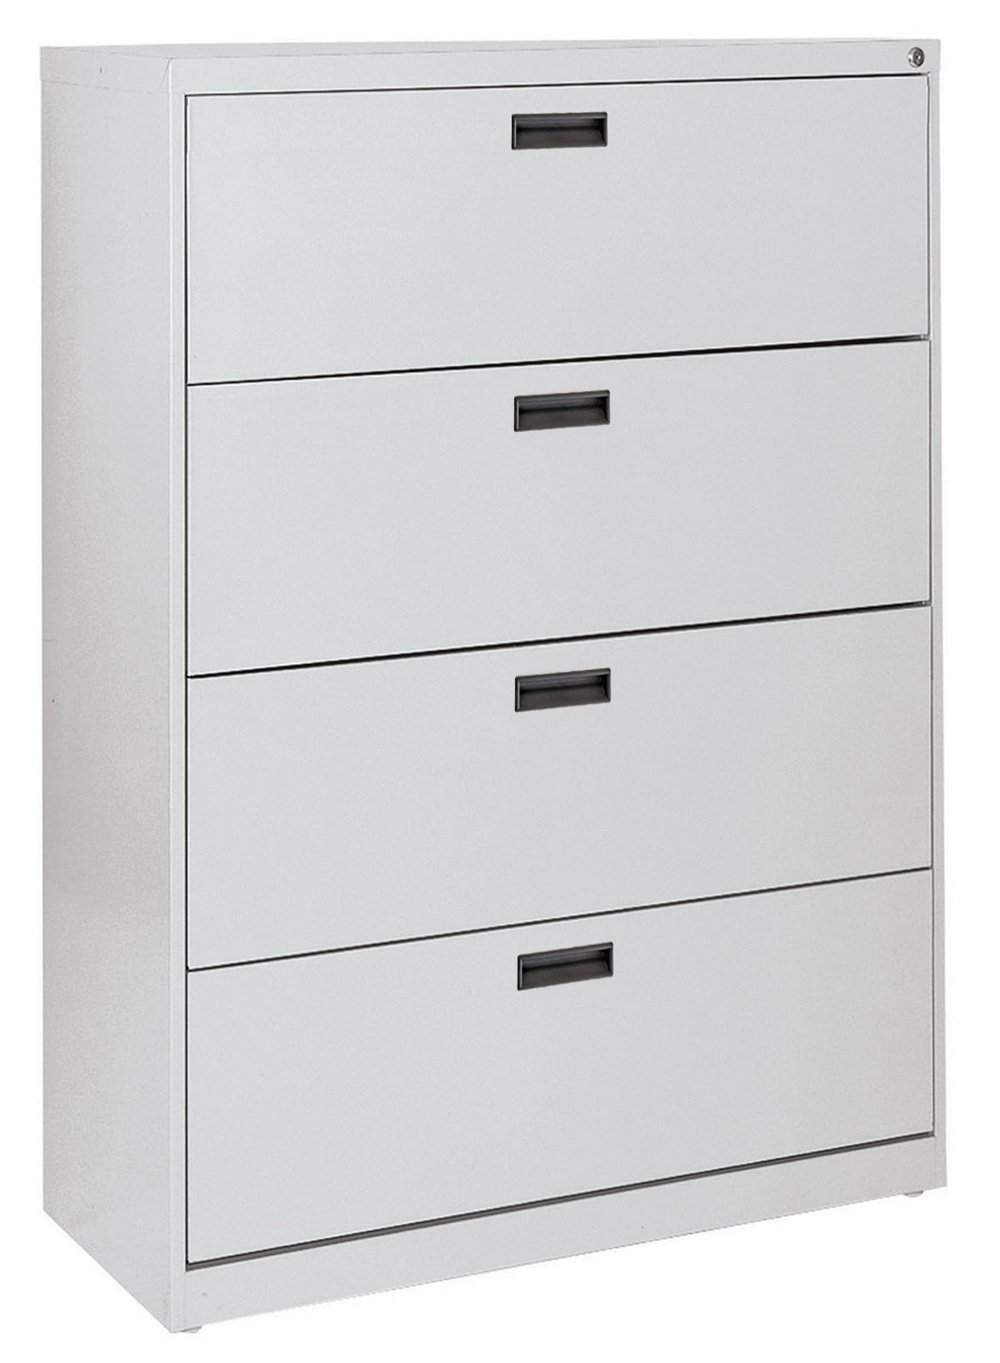 Sandusky 400 Series Dove Gray Steel Lateral File Cabinet with Plastic Handle, 30'' Width x 53-1/4'' Height x 18'' Depth, 4 Drawers by Sandusky